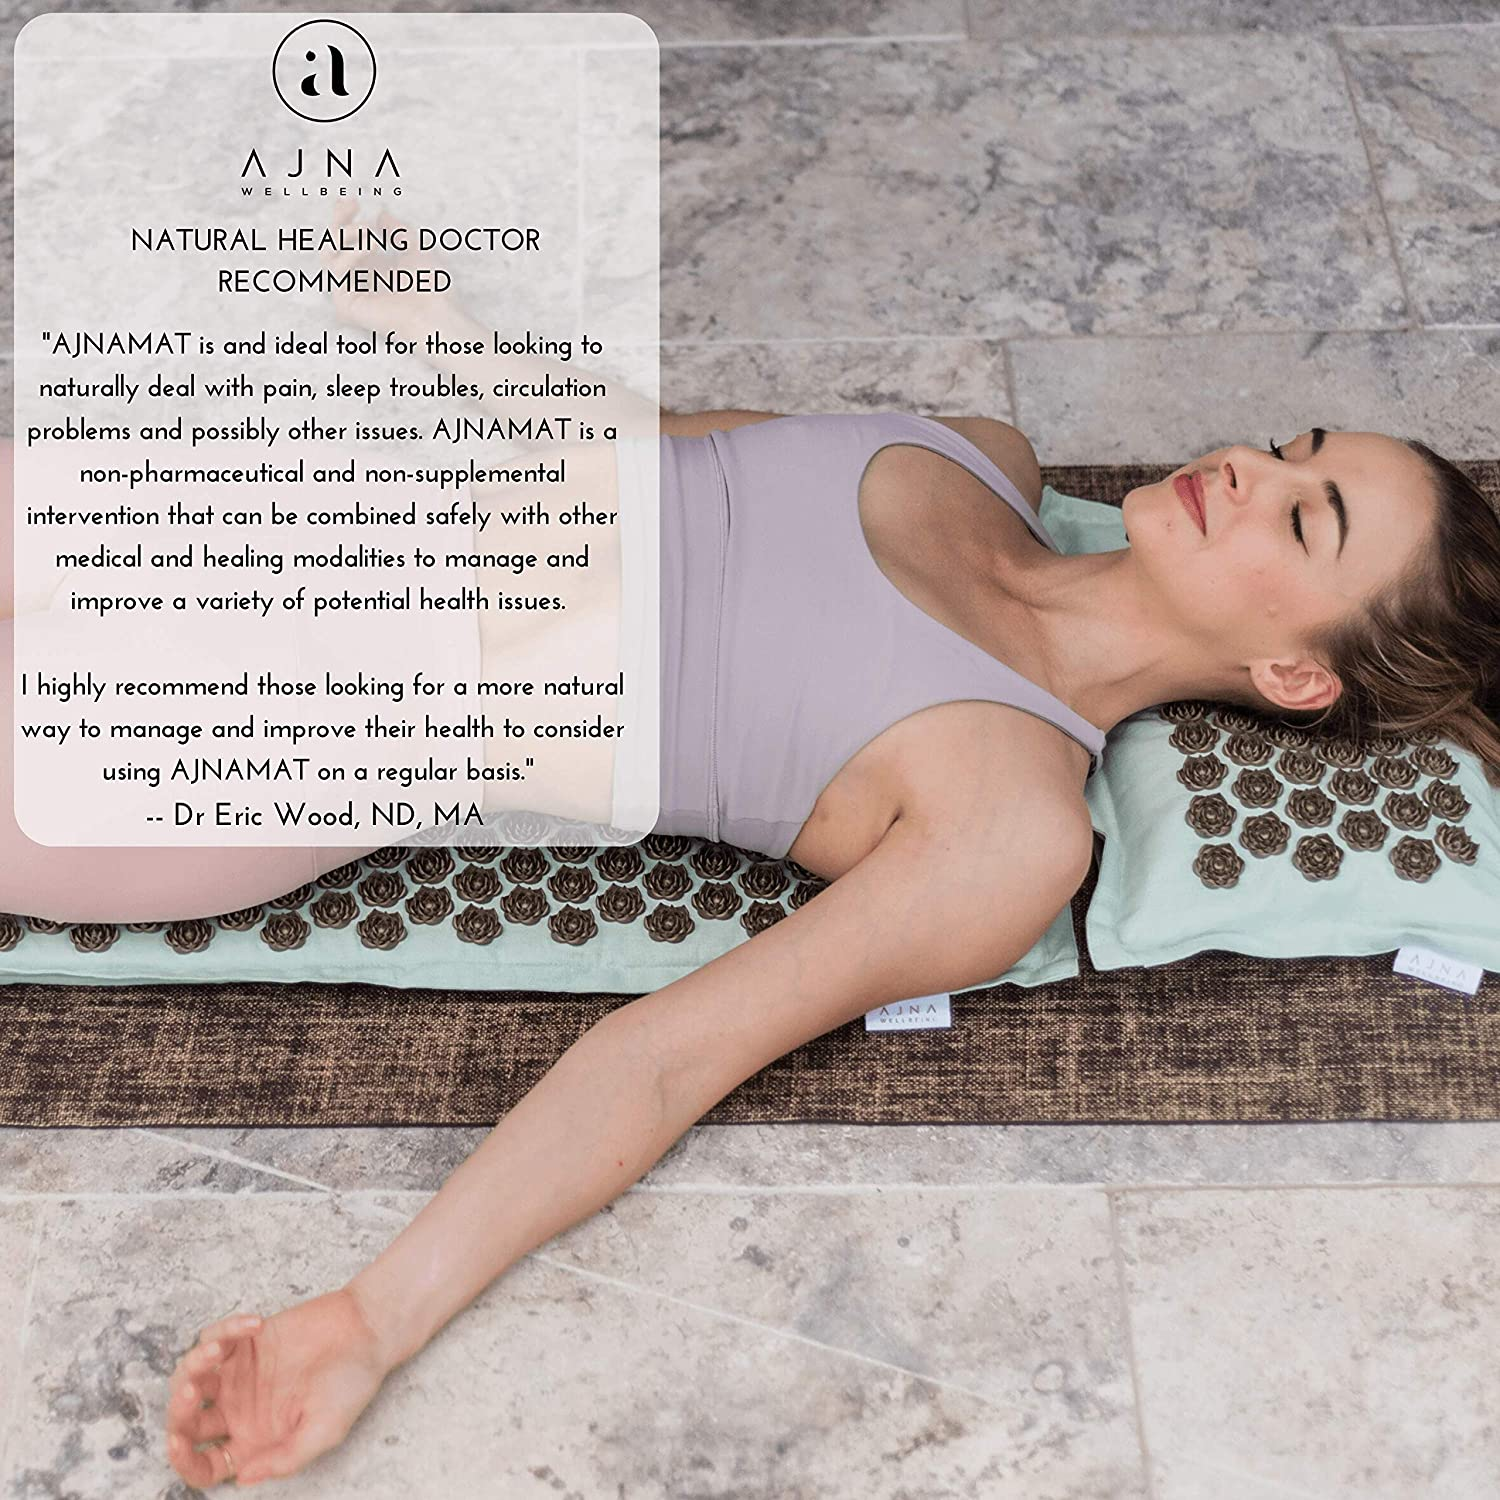 Acupressure Mat & Pillow Set - Natural Organic Linen Cotton Acupuncture Mat & Bag